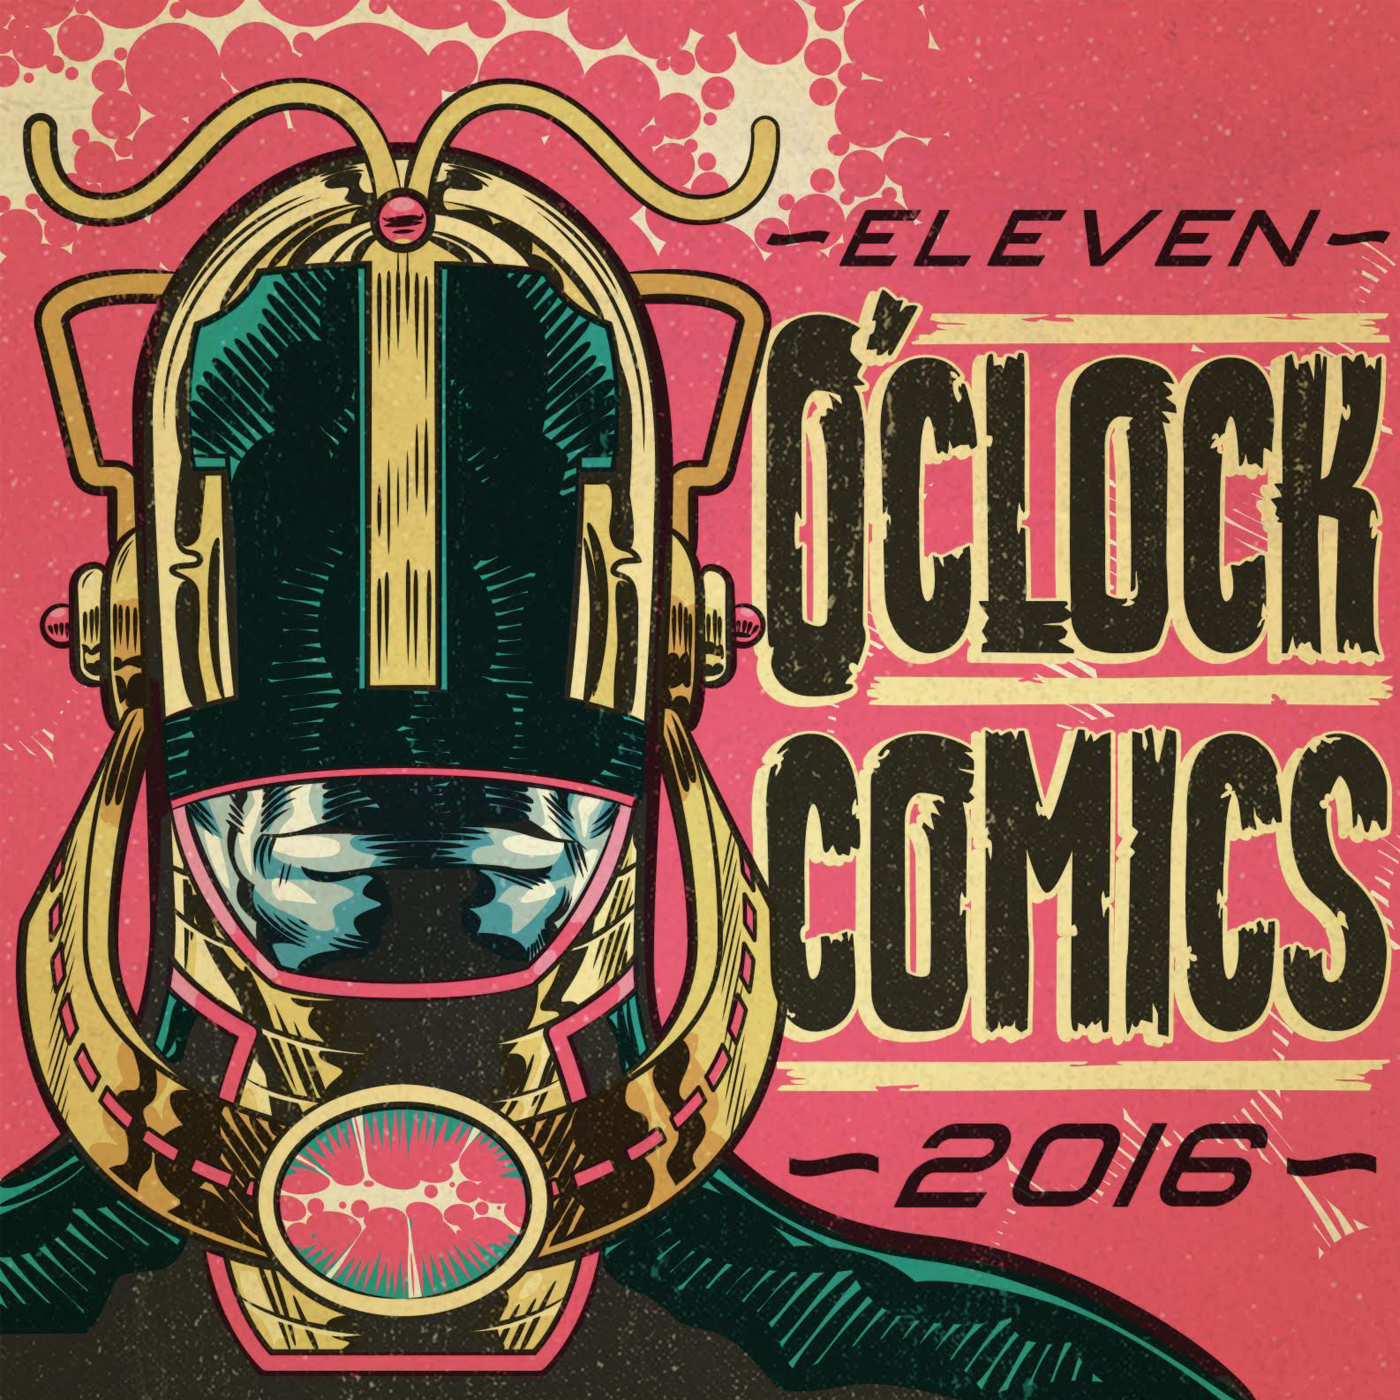 11 O'Clock Comics Episode 418